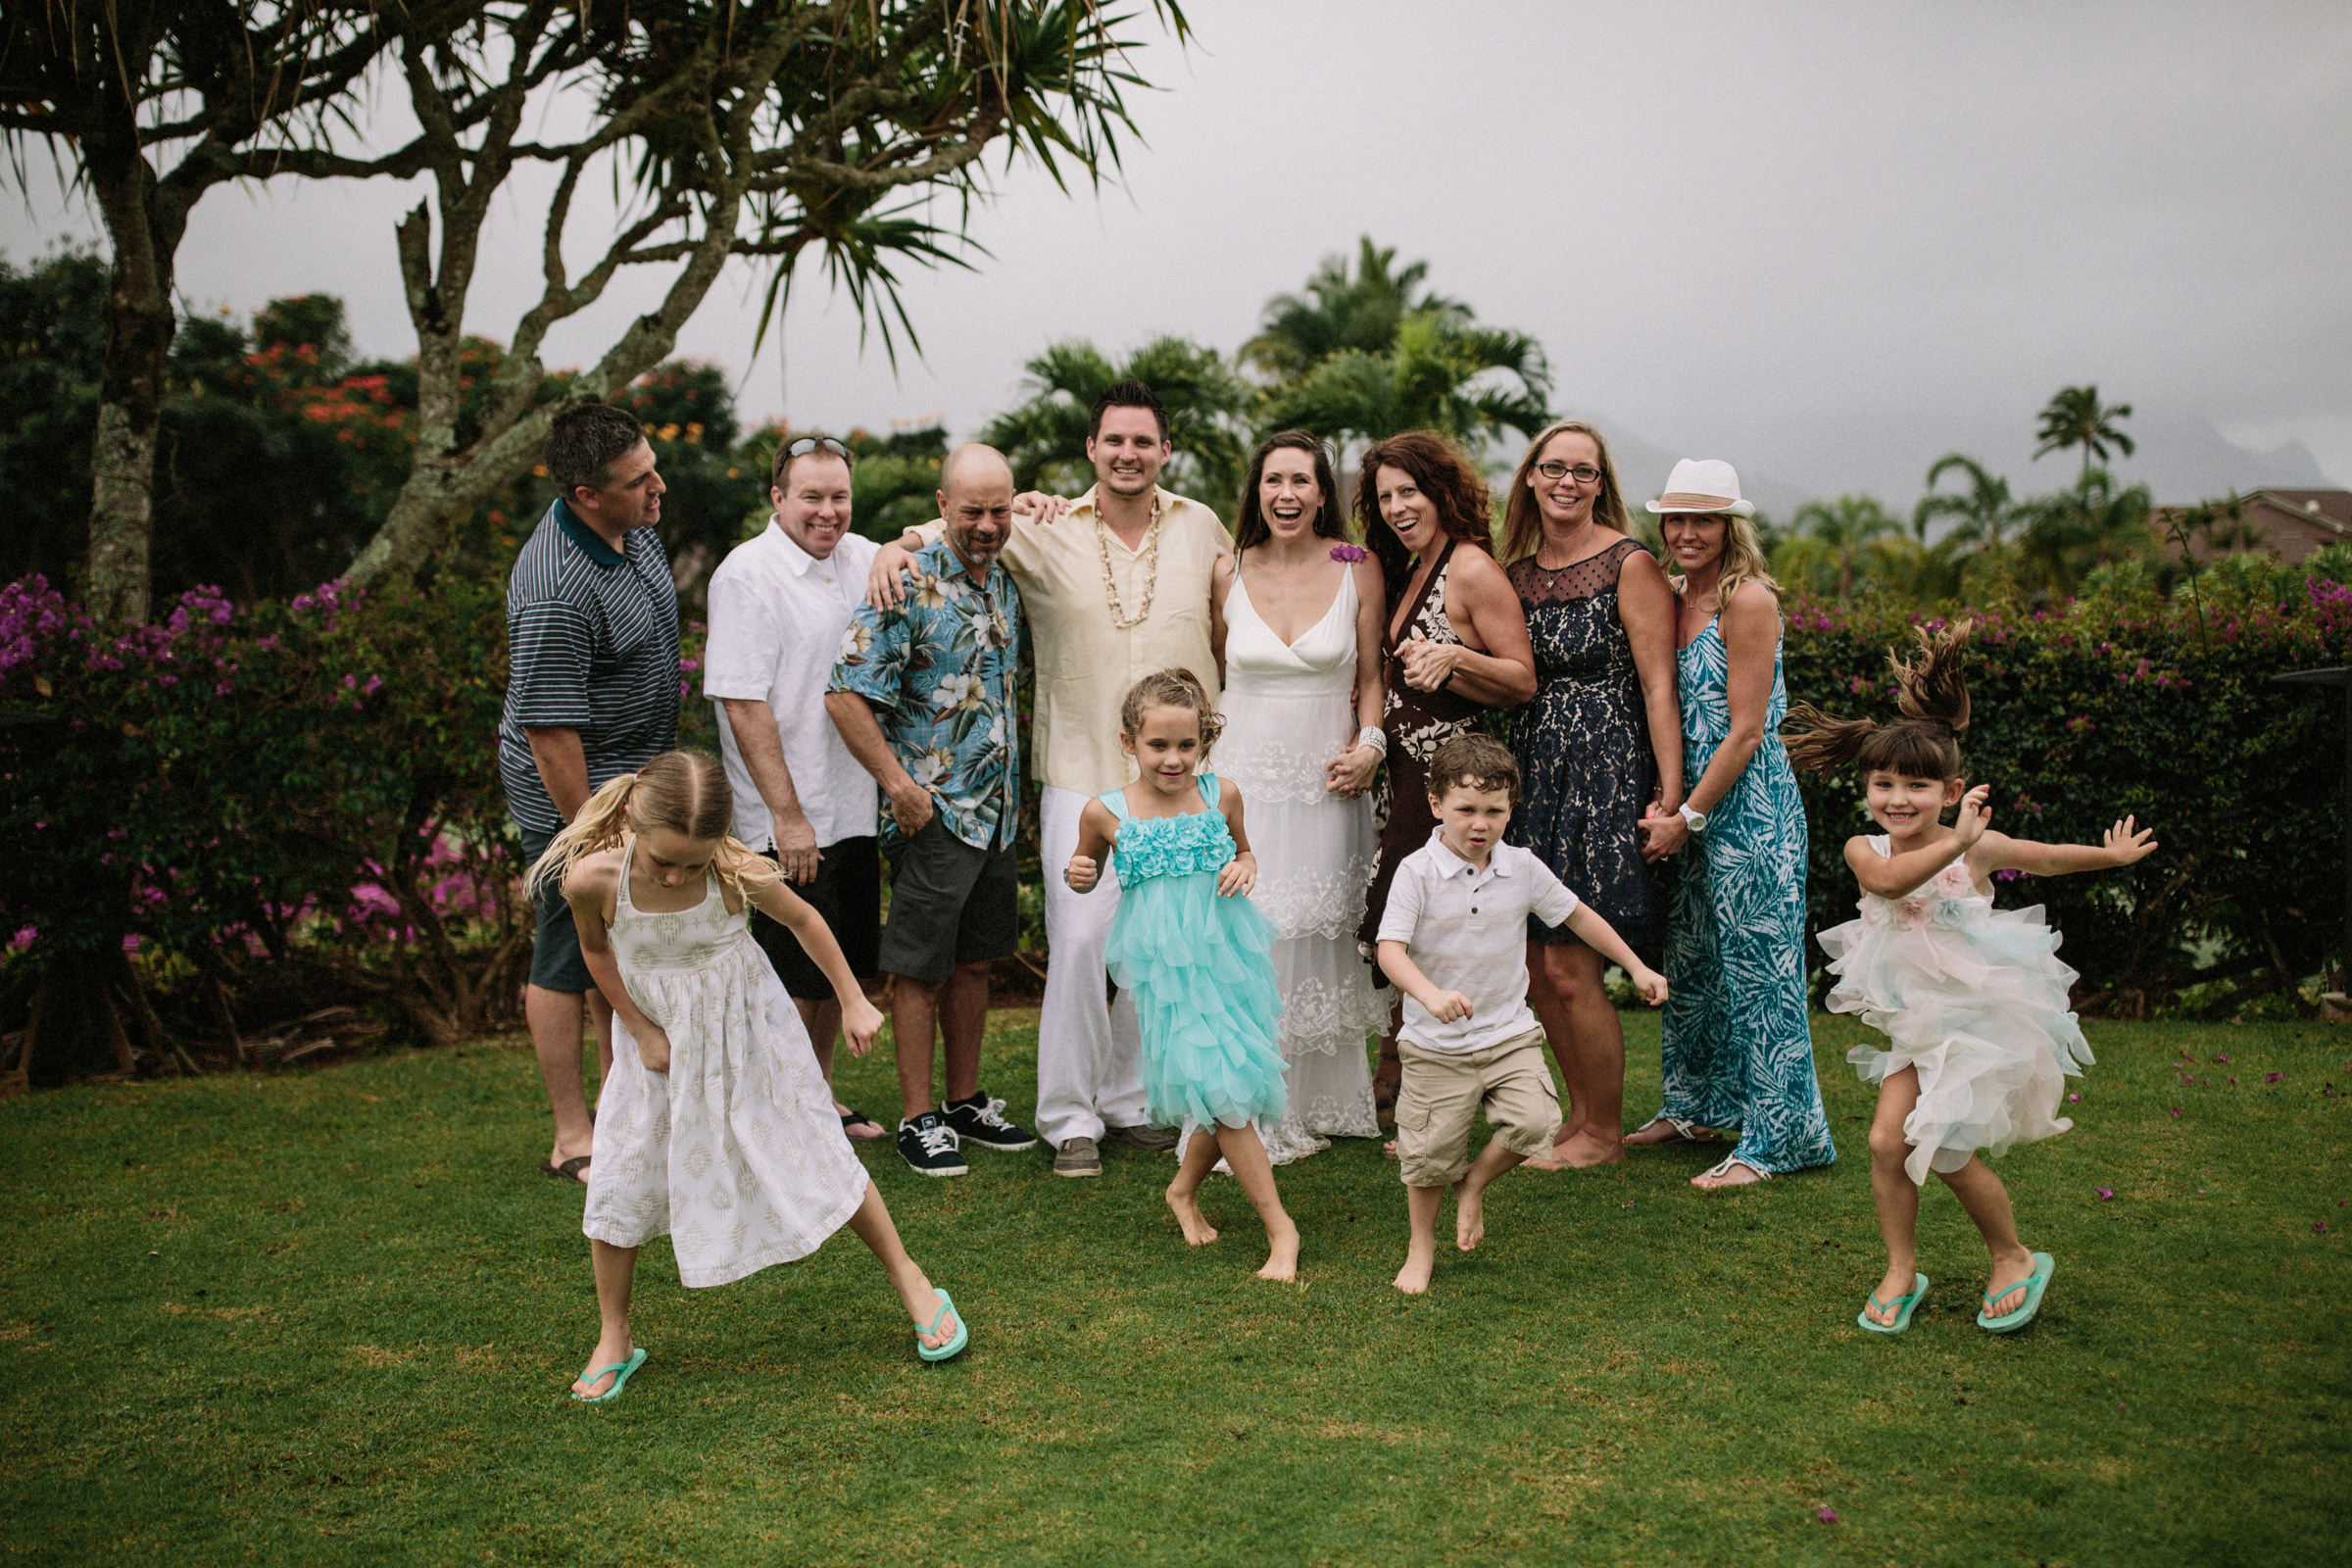 Group shot of family with kids in tropical setting - photo by Jonas Seaman Photography